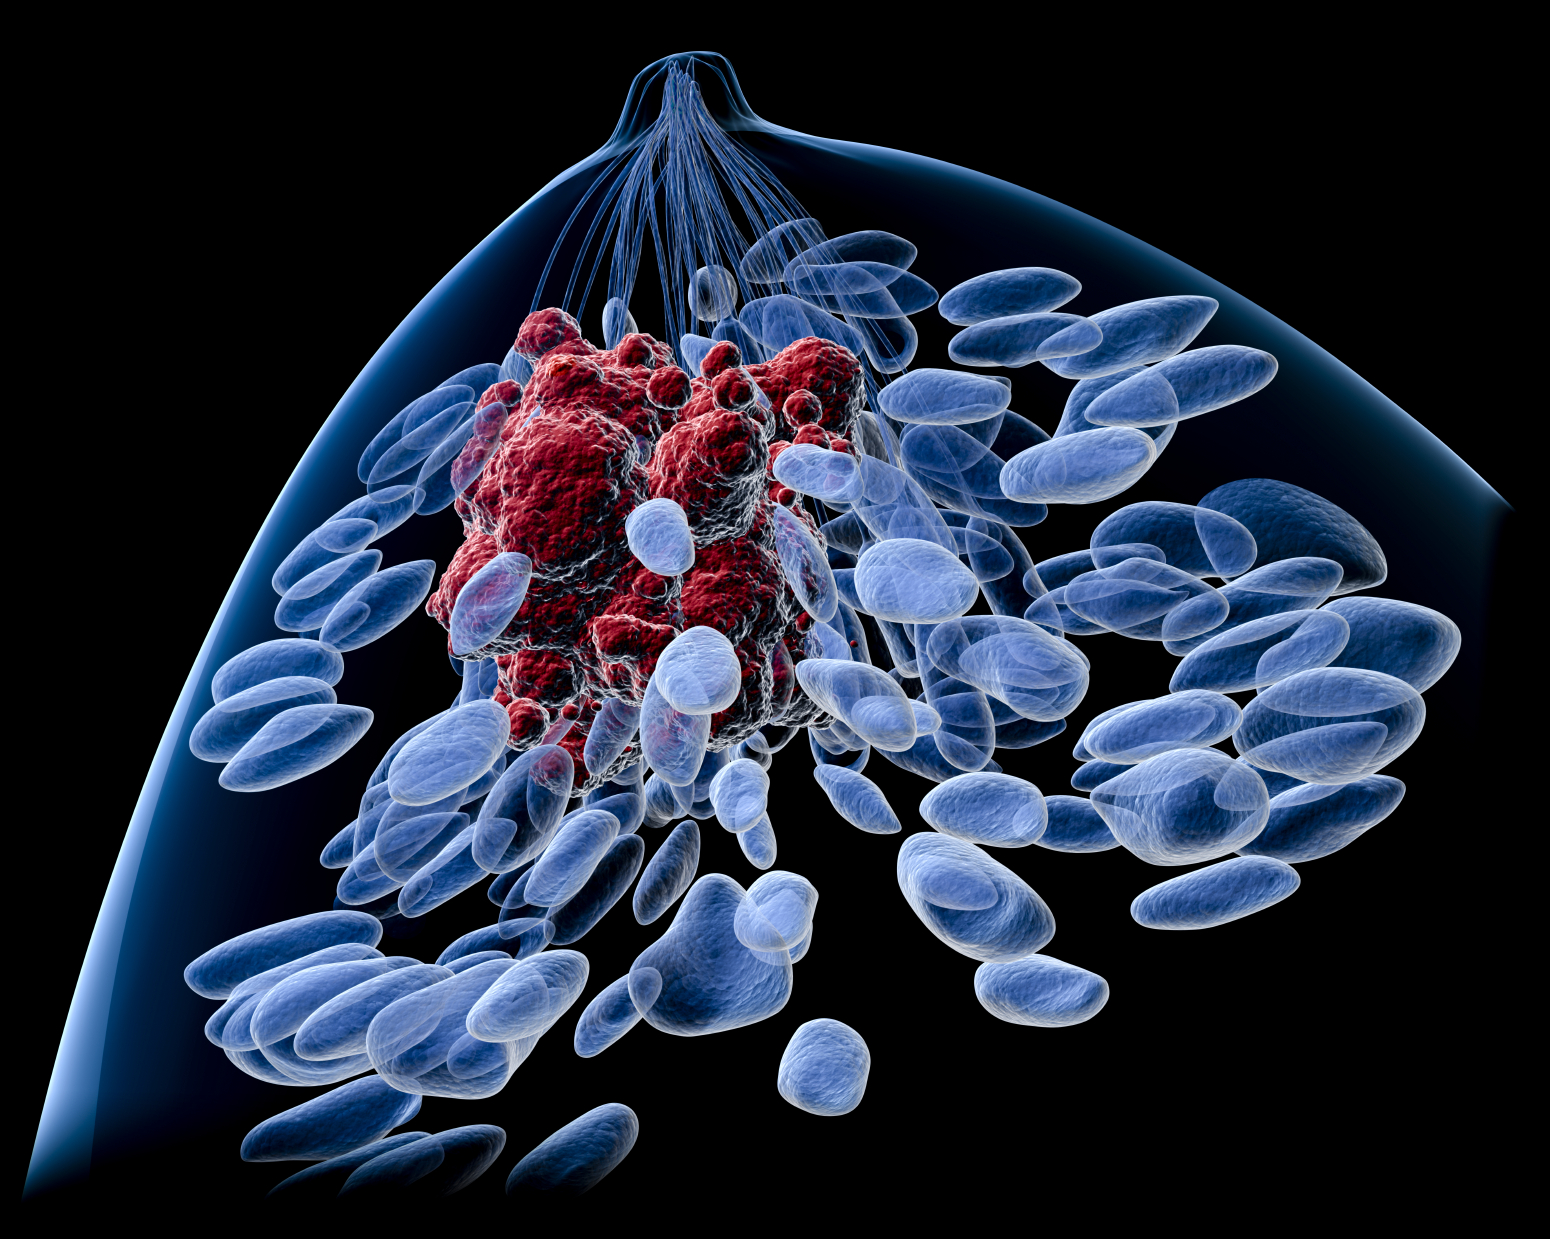 From Foe to Friend: Breast Cancer Cells Alter Immune Cells to Metastatic State